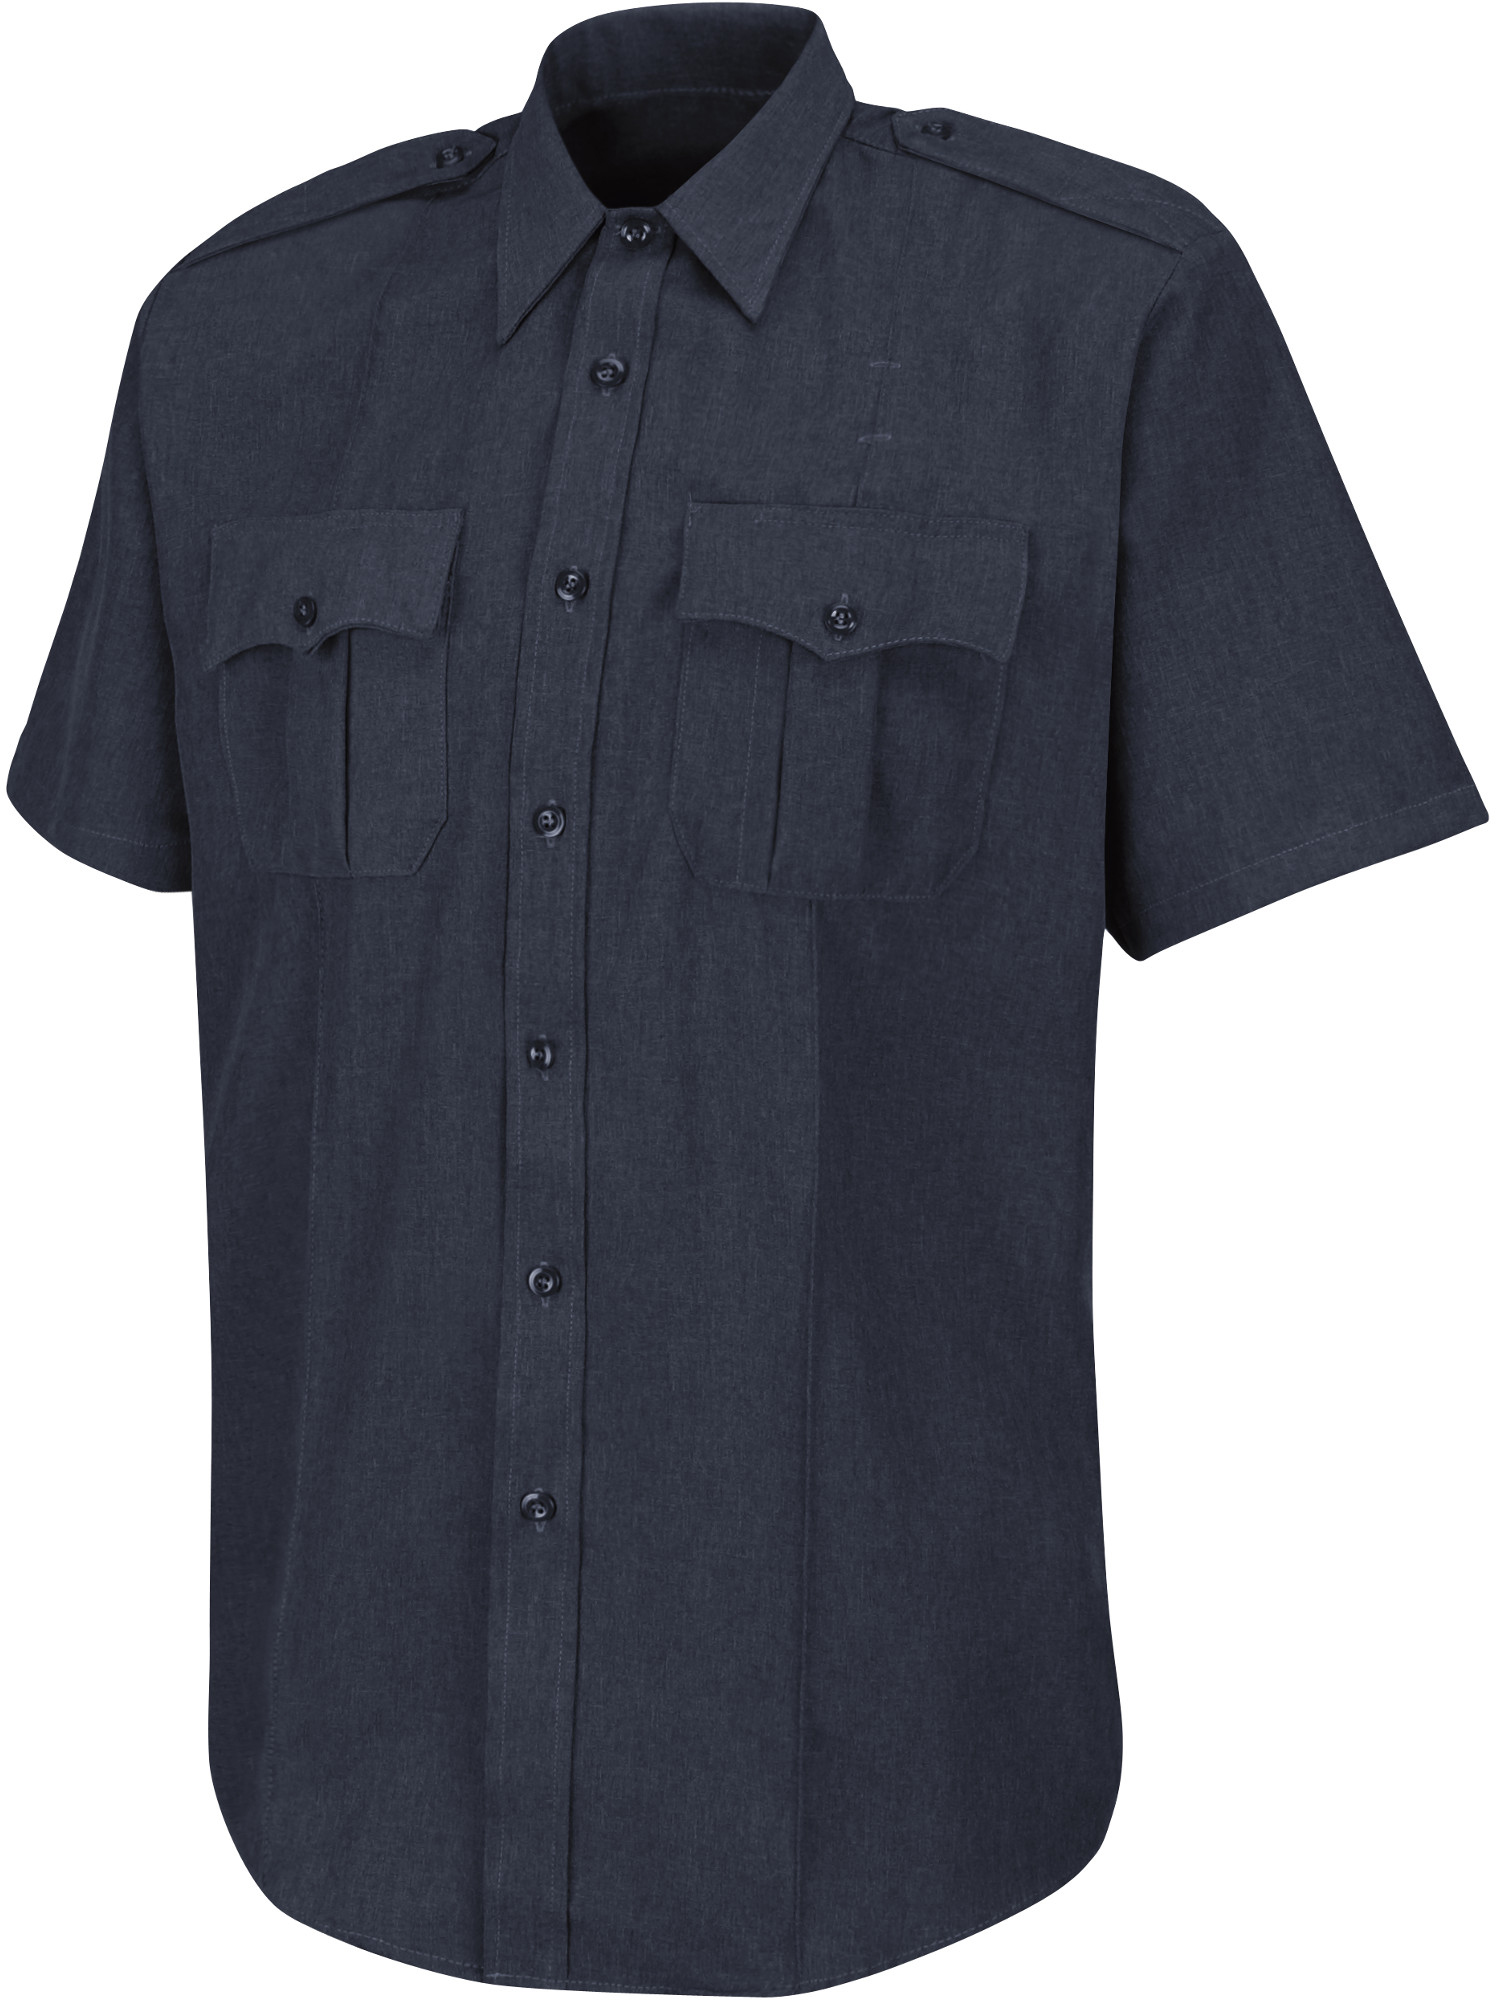 Horace Small Sentry Plus Shirt 18536 French Blue Heather